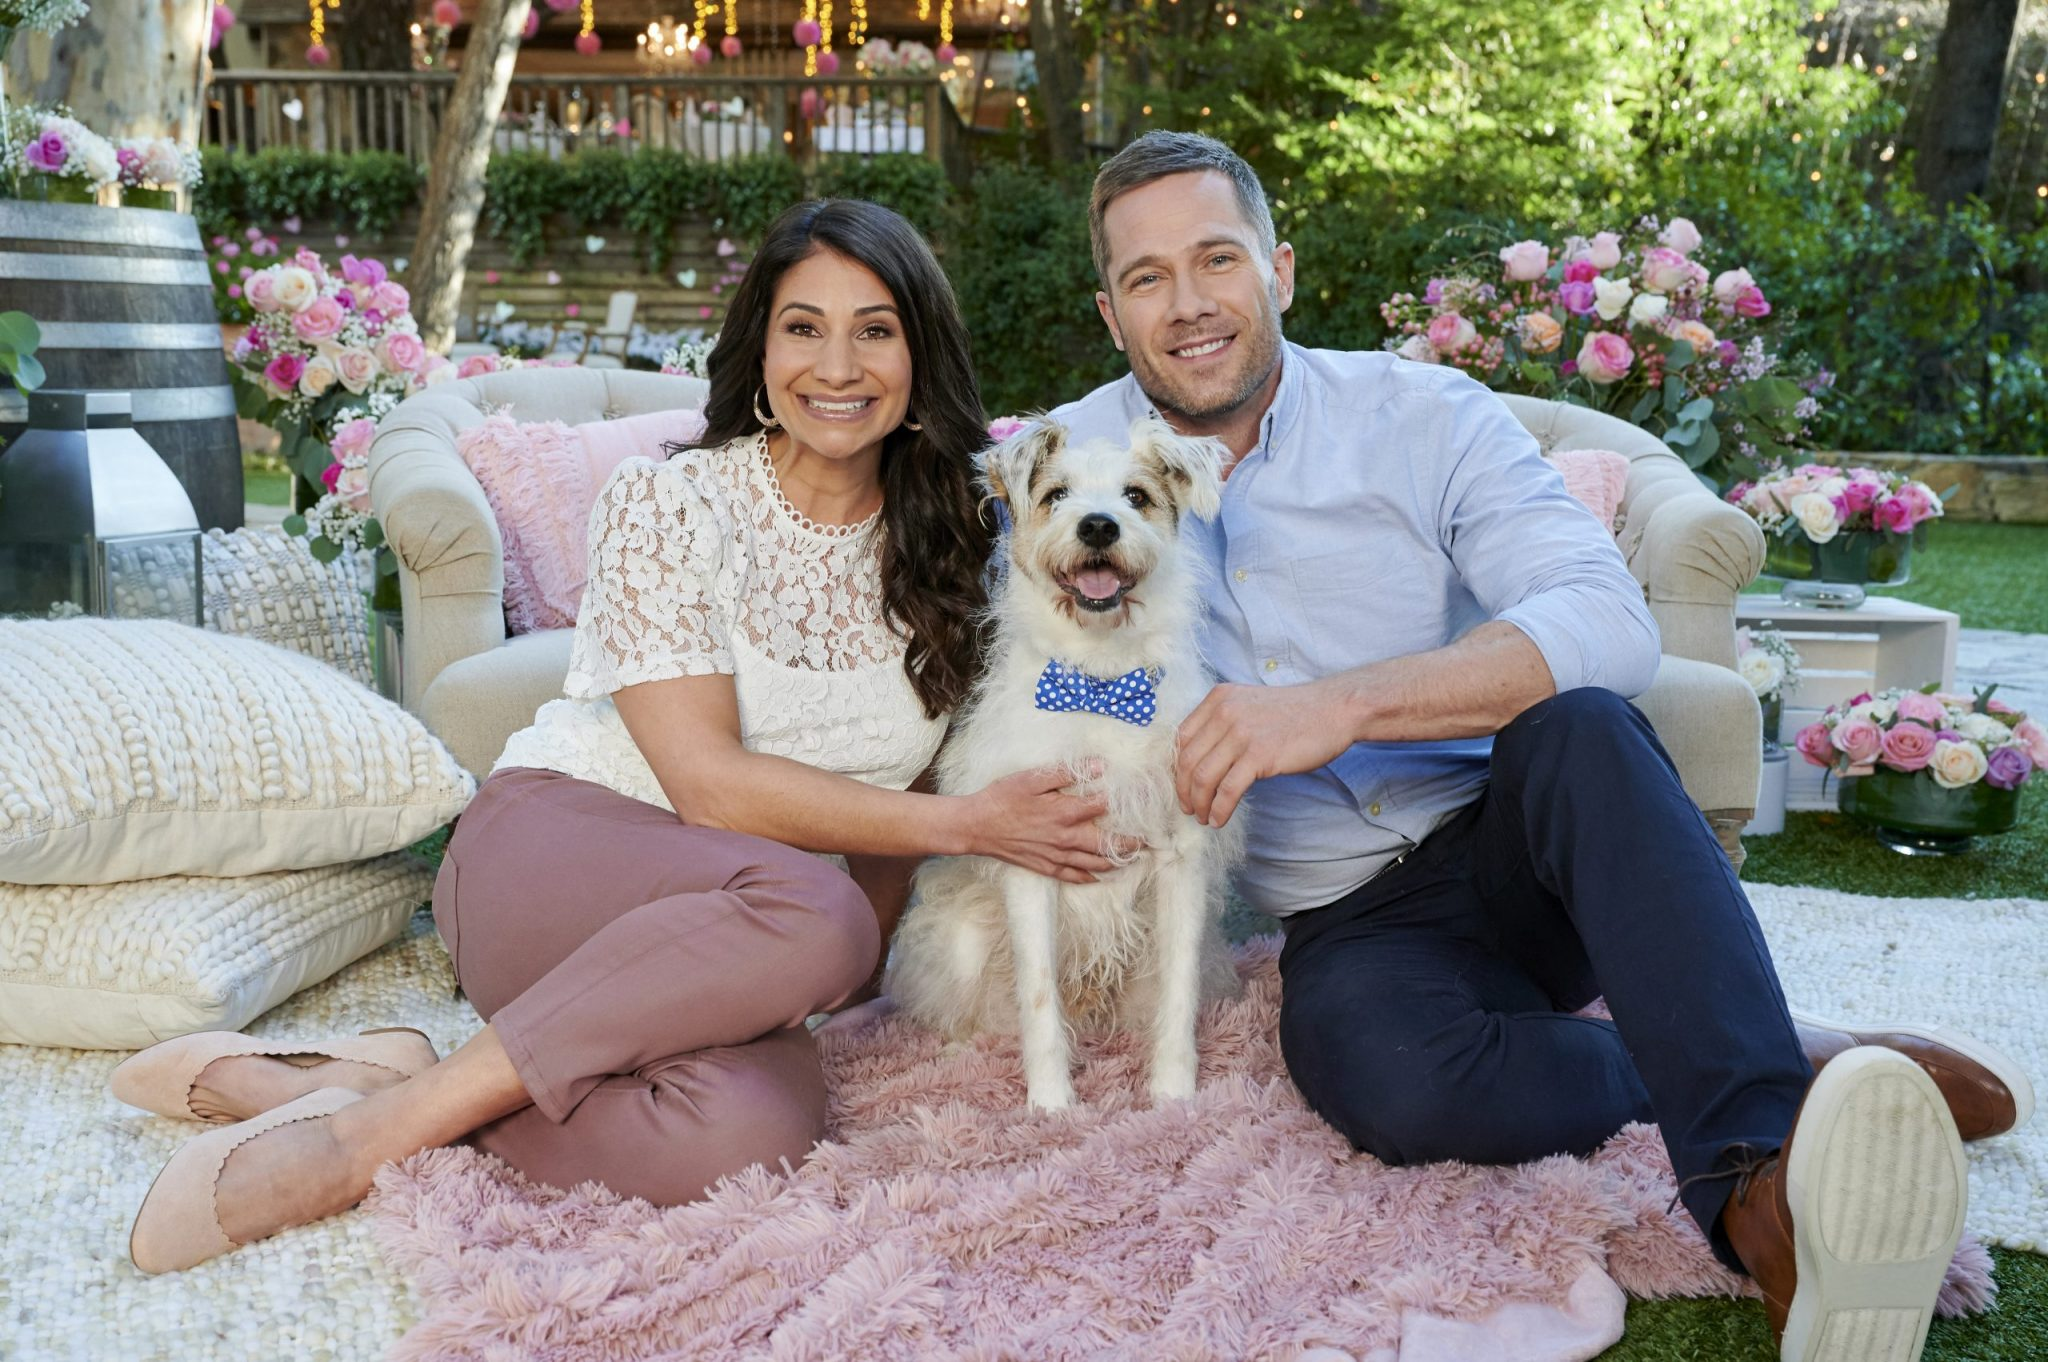 Hallmark Photo: Larissa Wohl, Luke Macfarlane Credit: ©2020 Crown Media United States LLC/Photographer: Alexx Henry/Alexx Henry Studios, LLC